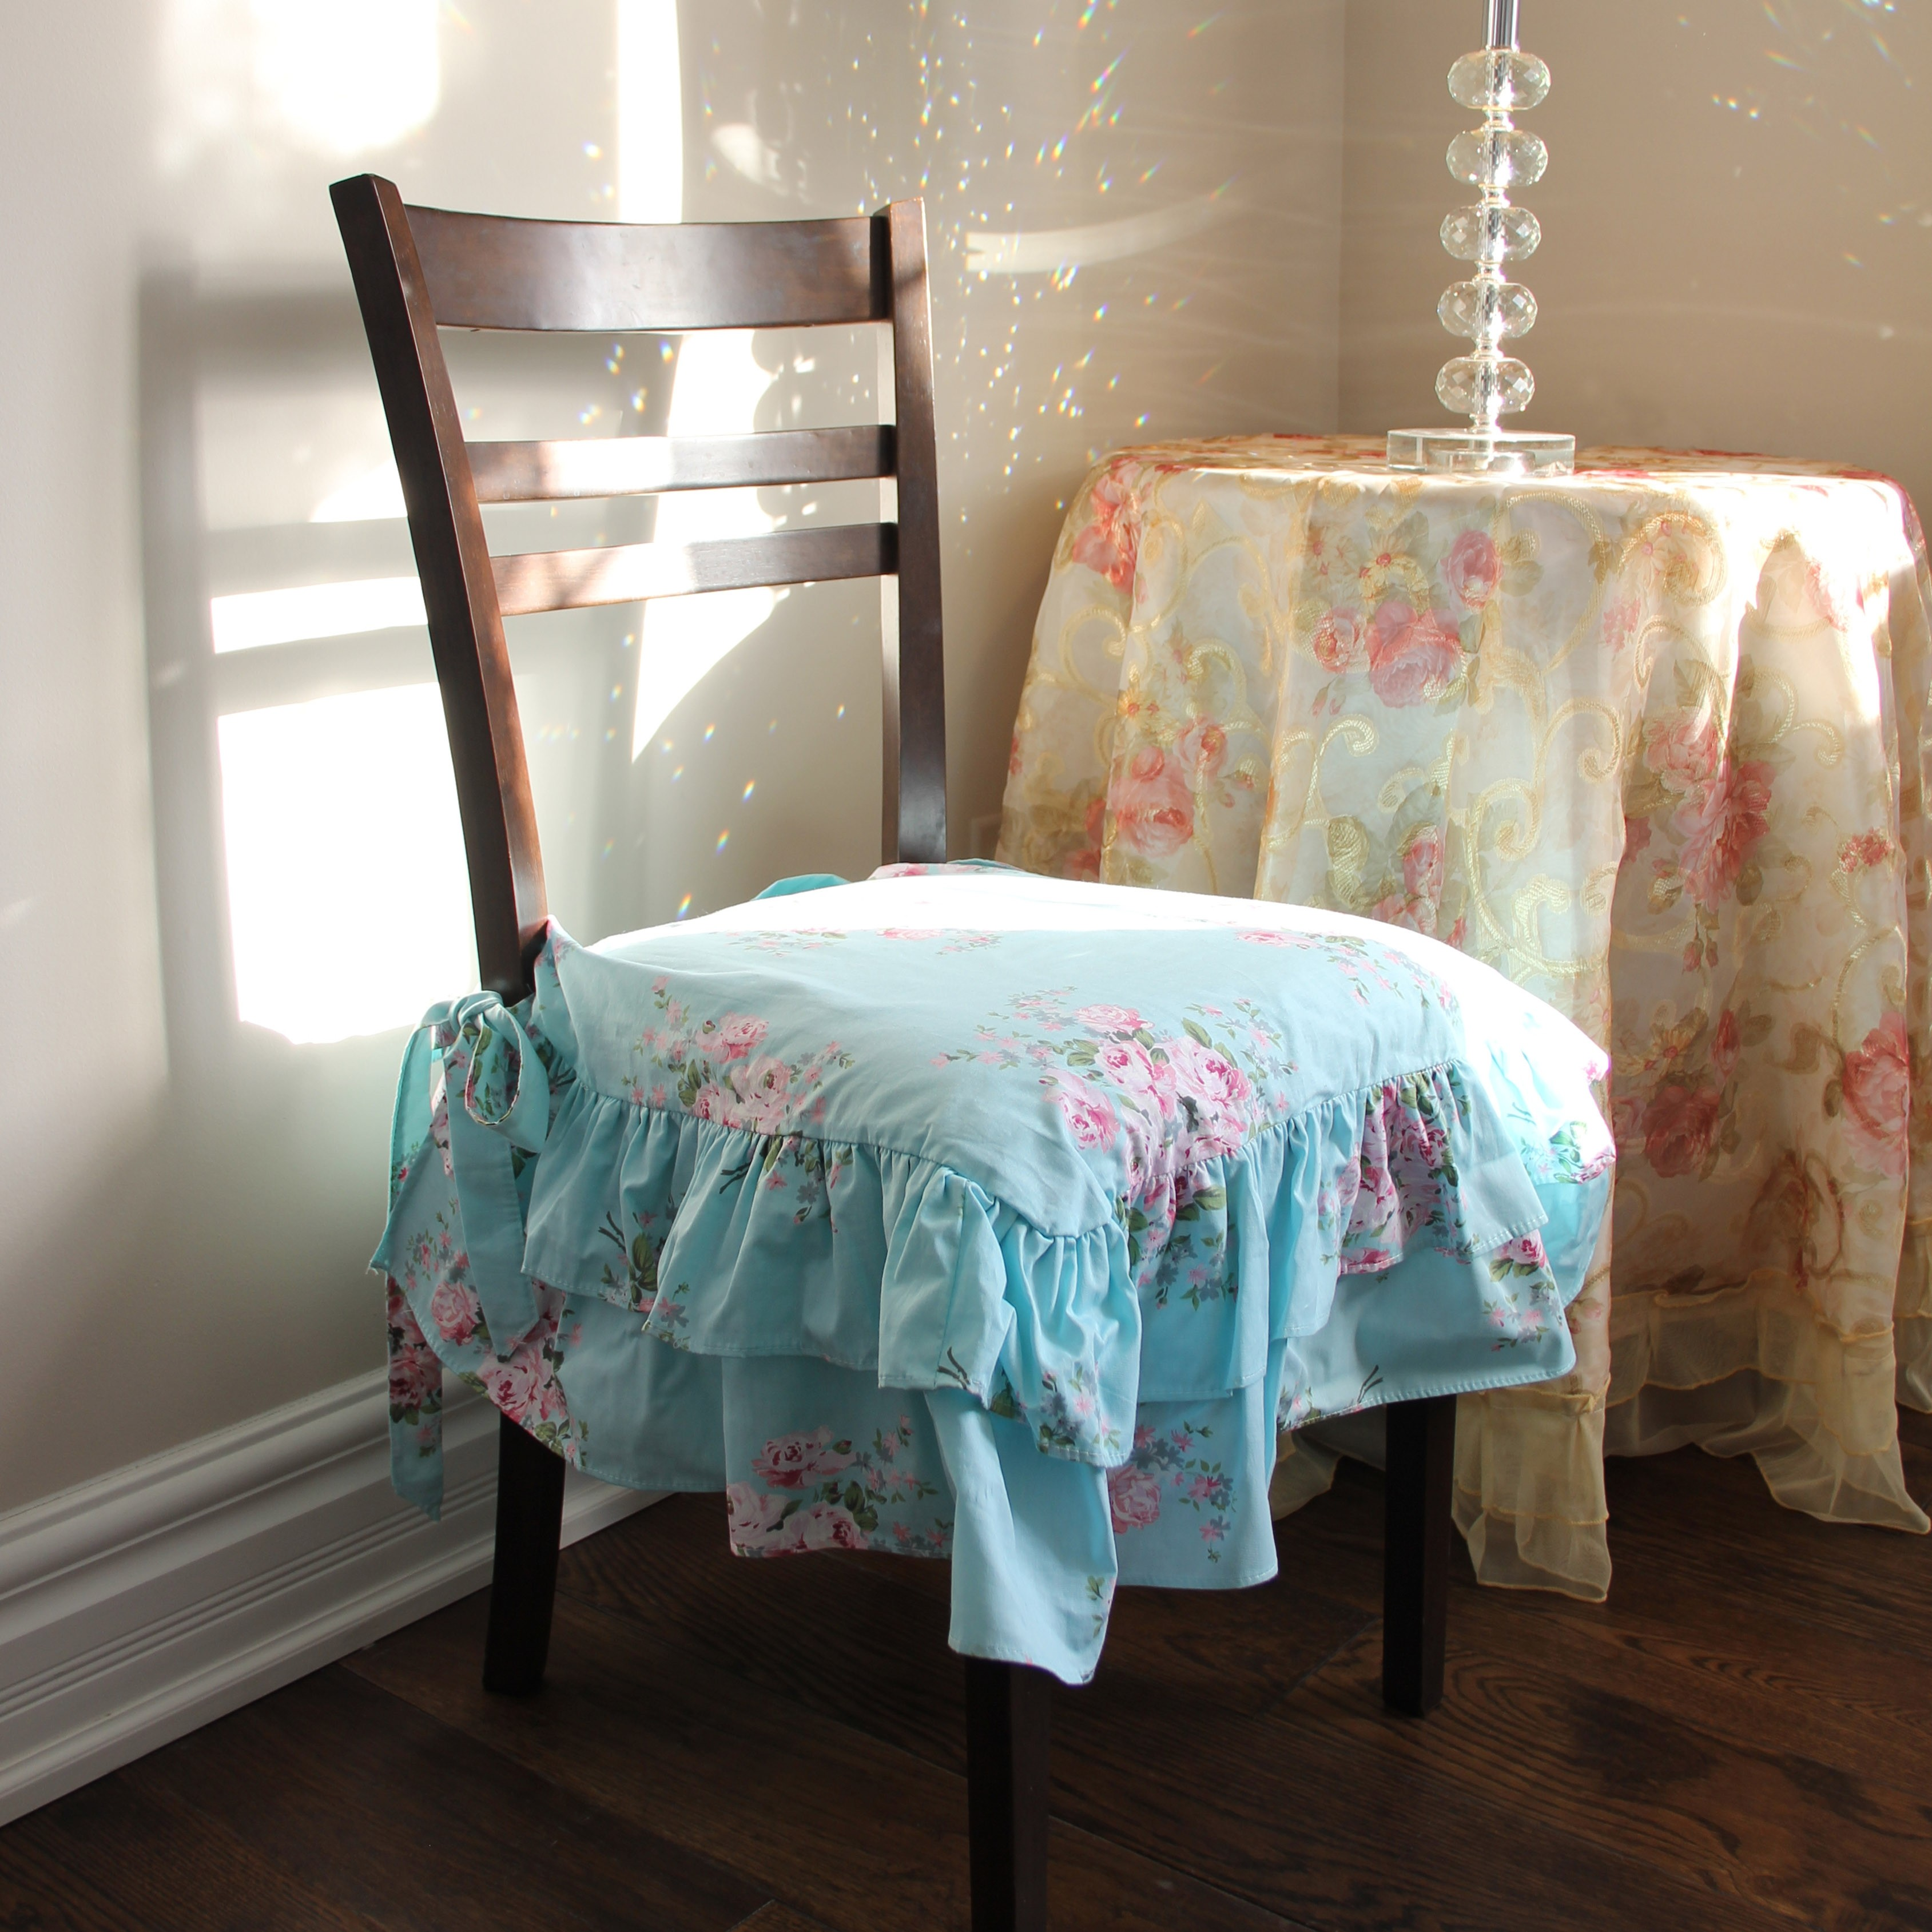 CHAIR COVER As Shabby Chic Chair Covers, Image Source: Lovely Decor.com